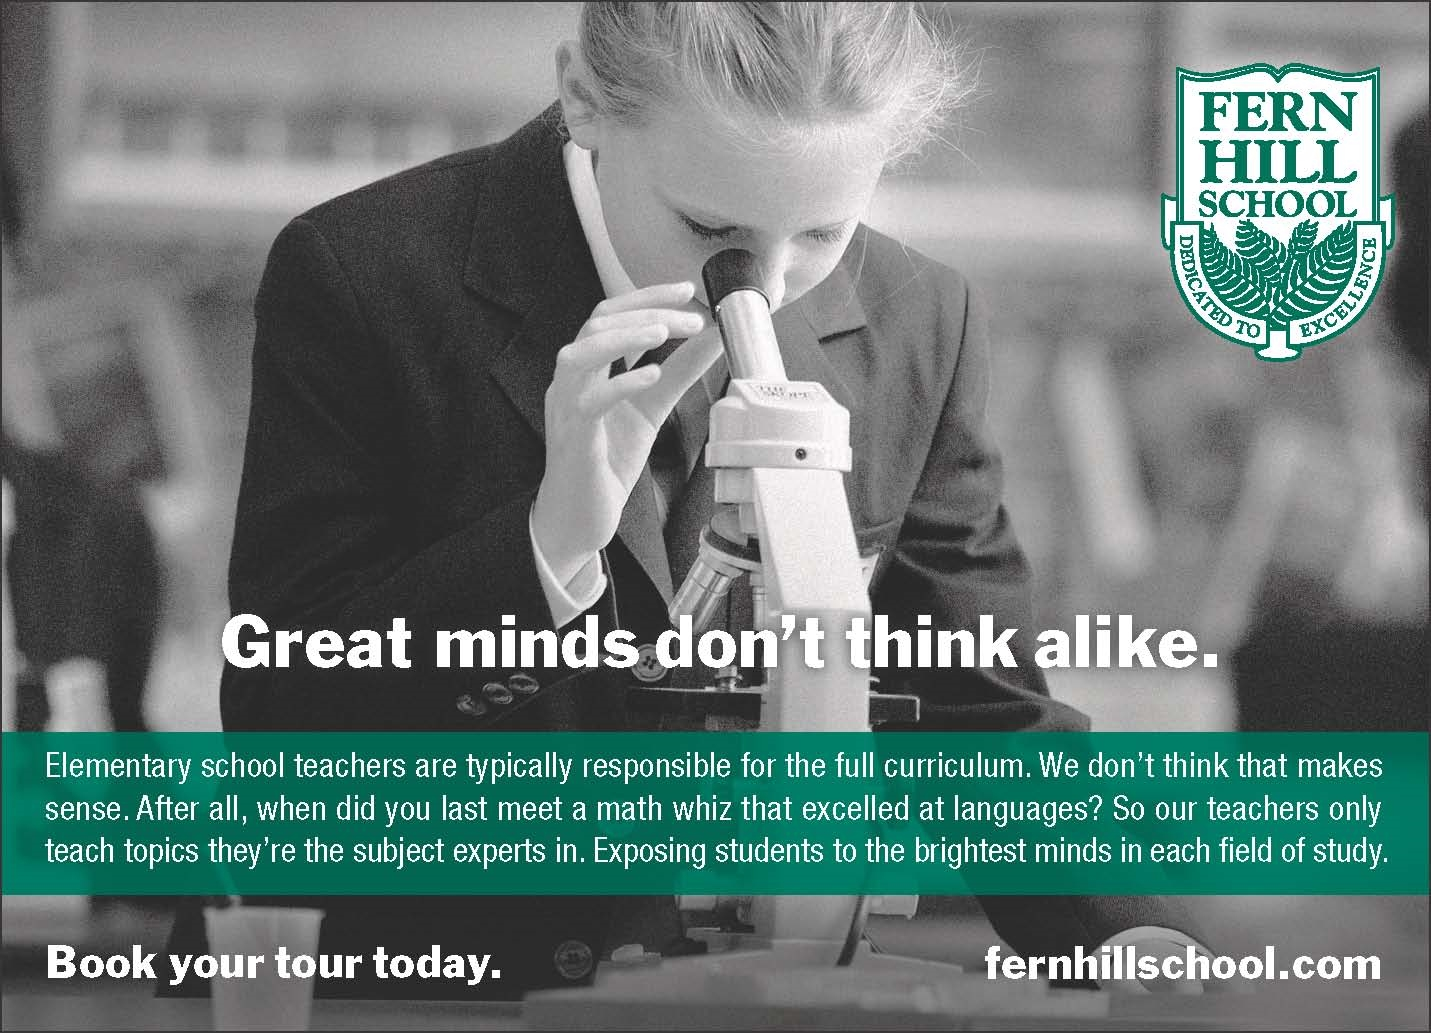 Fern Hill _Great minds_ ad.jpg